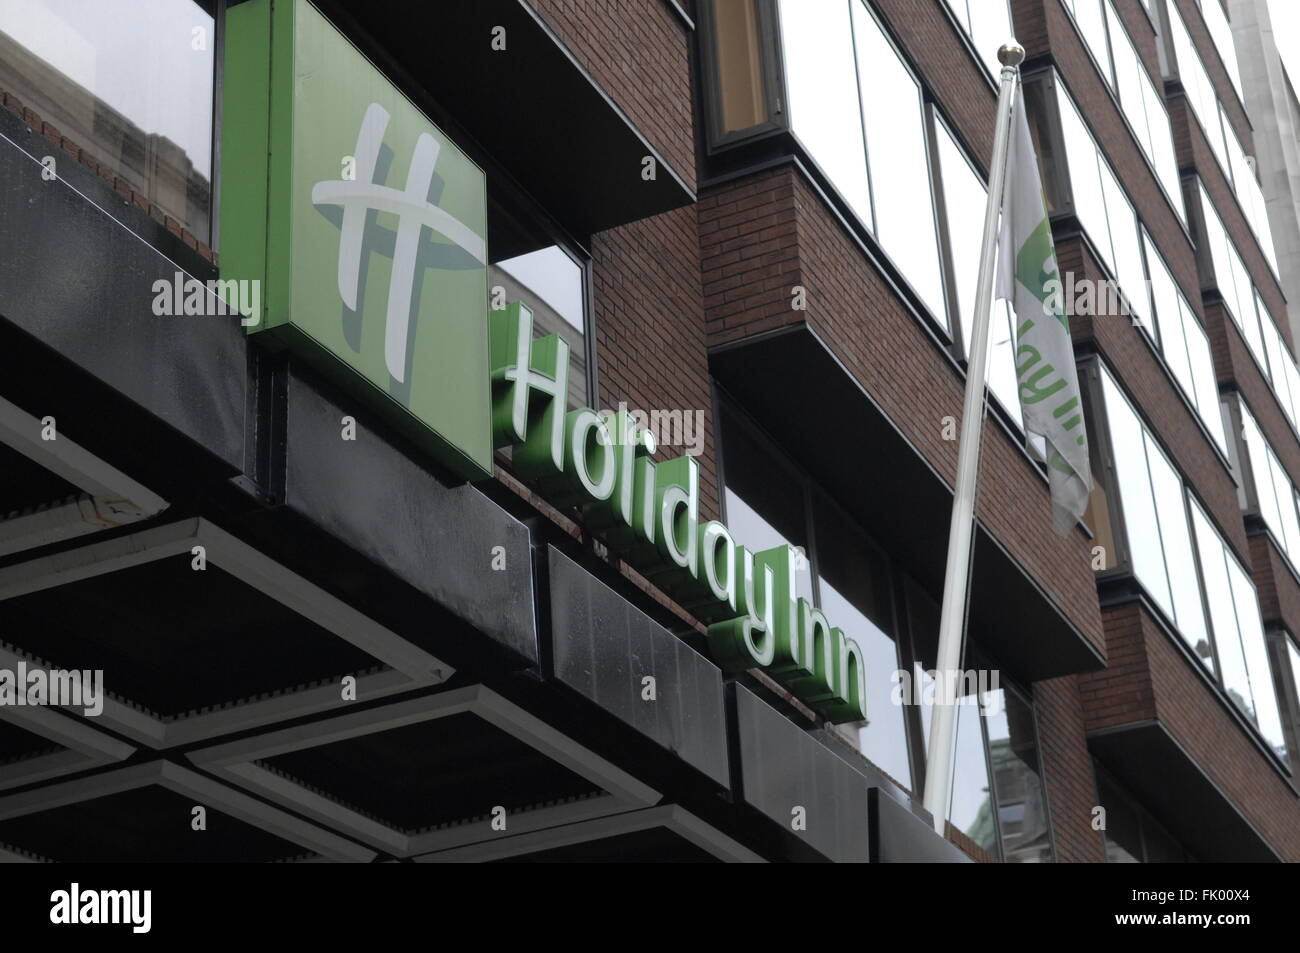 Holiday Inn hotel sign in Berkeley Street,London,W1 England - Stock Image